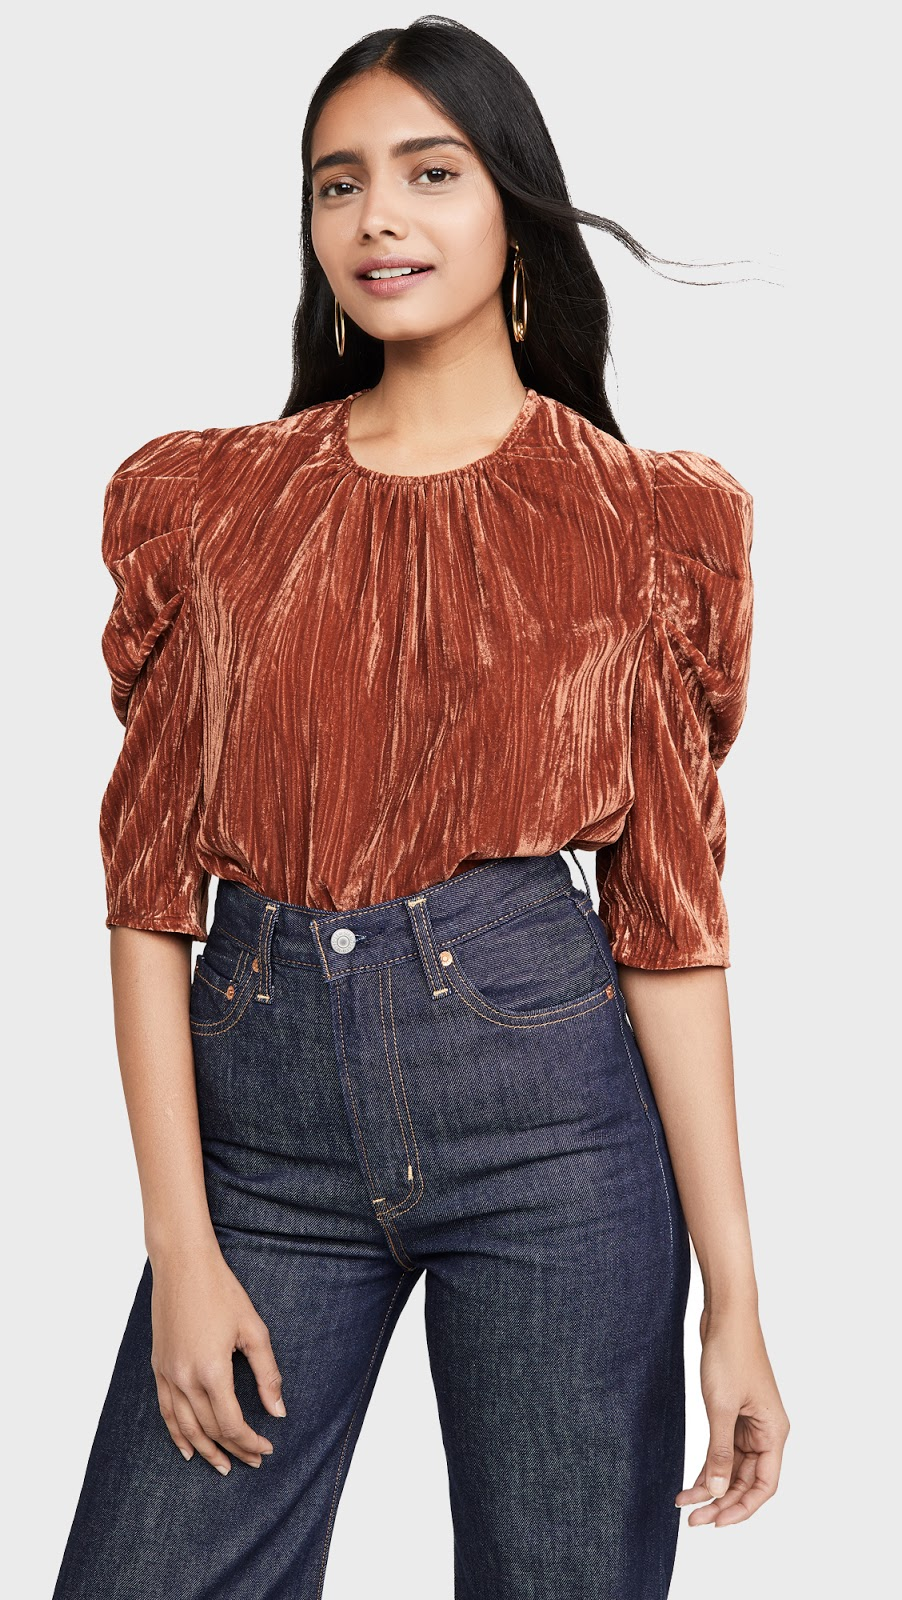 Under $100 Party Top for Thanksgiving or Christmas Holidays — Velvet Puff-Sleeve Top and High-Waisted Jeans